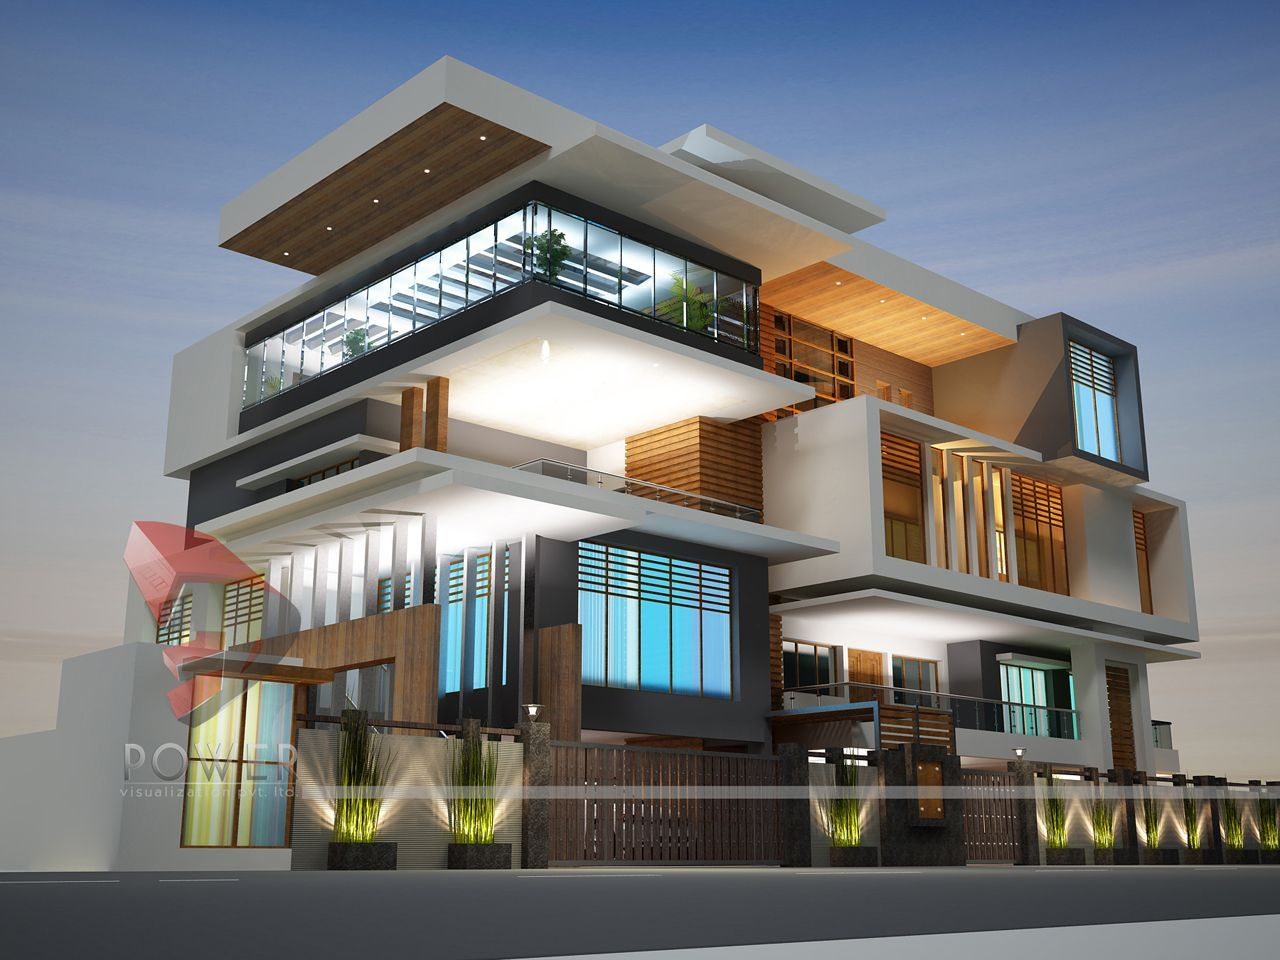 Modern house design in india architecture india modern for Architectural homes